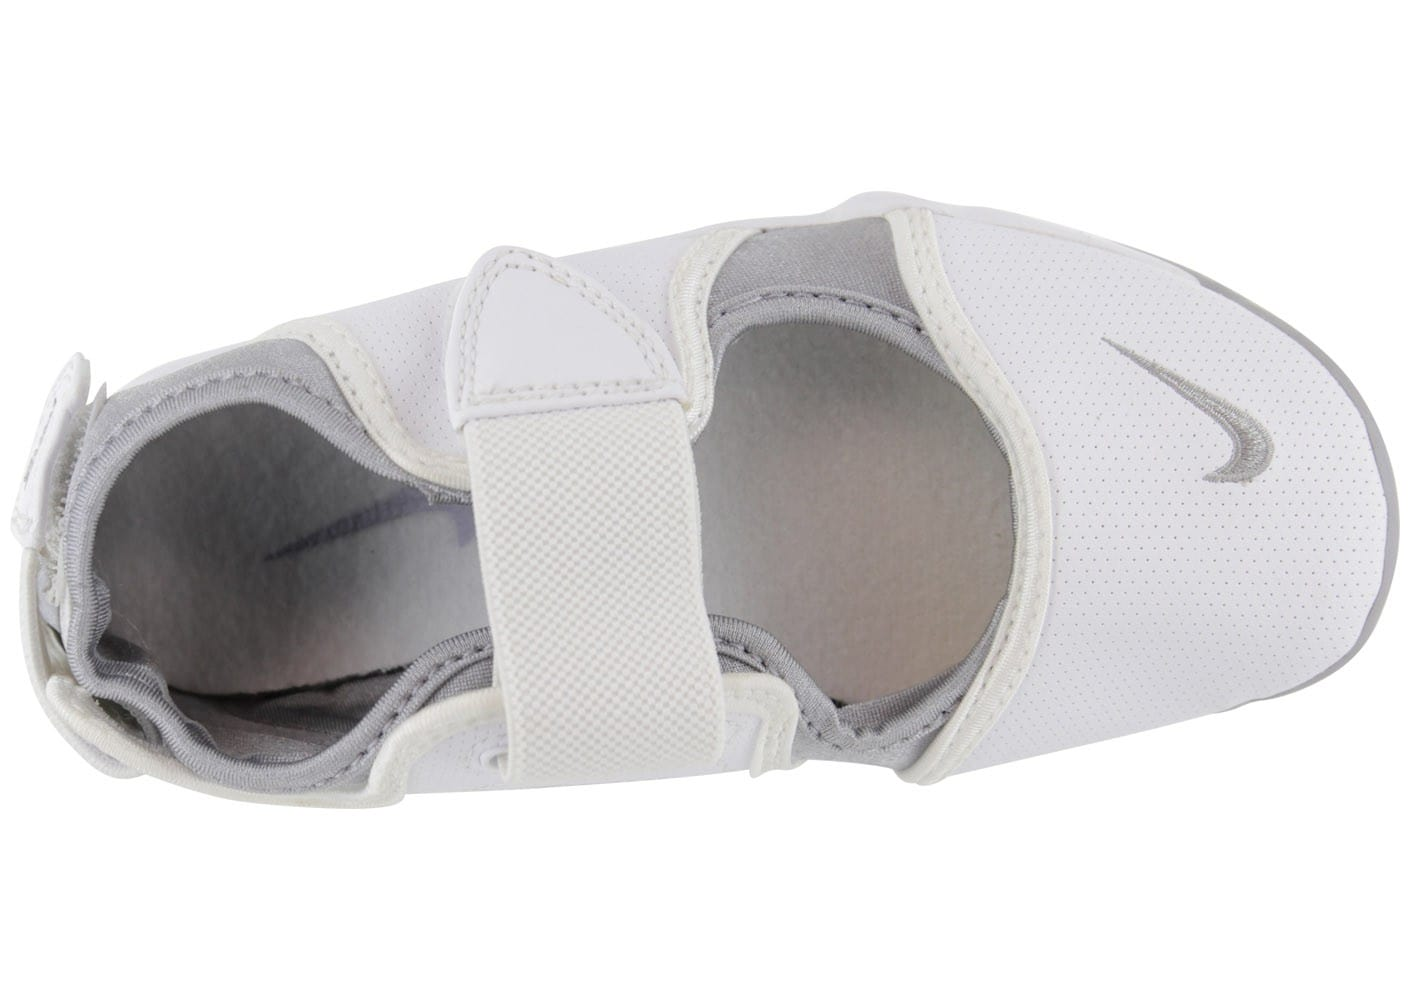 nike air rift enfant blanche chaussures chaussures chausport. Black Bedroom Furniture Sets. Home Design Ideas